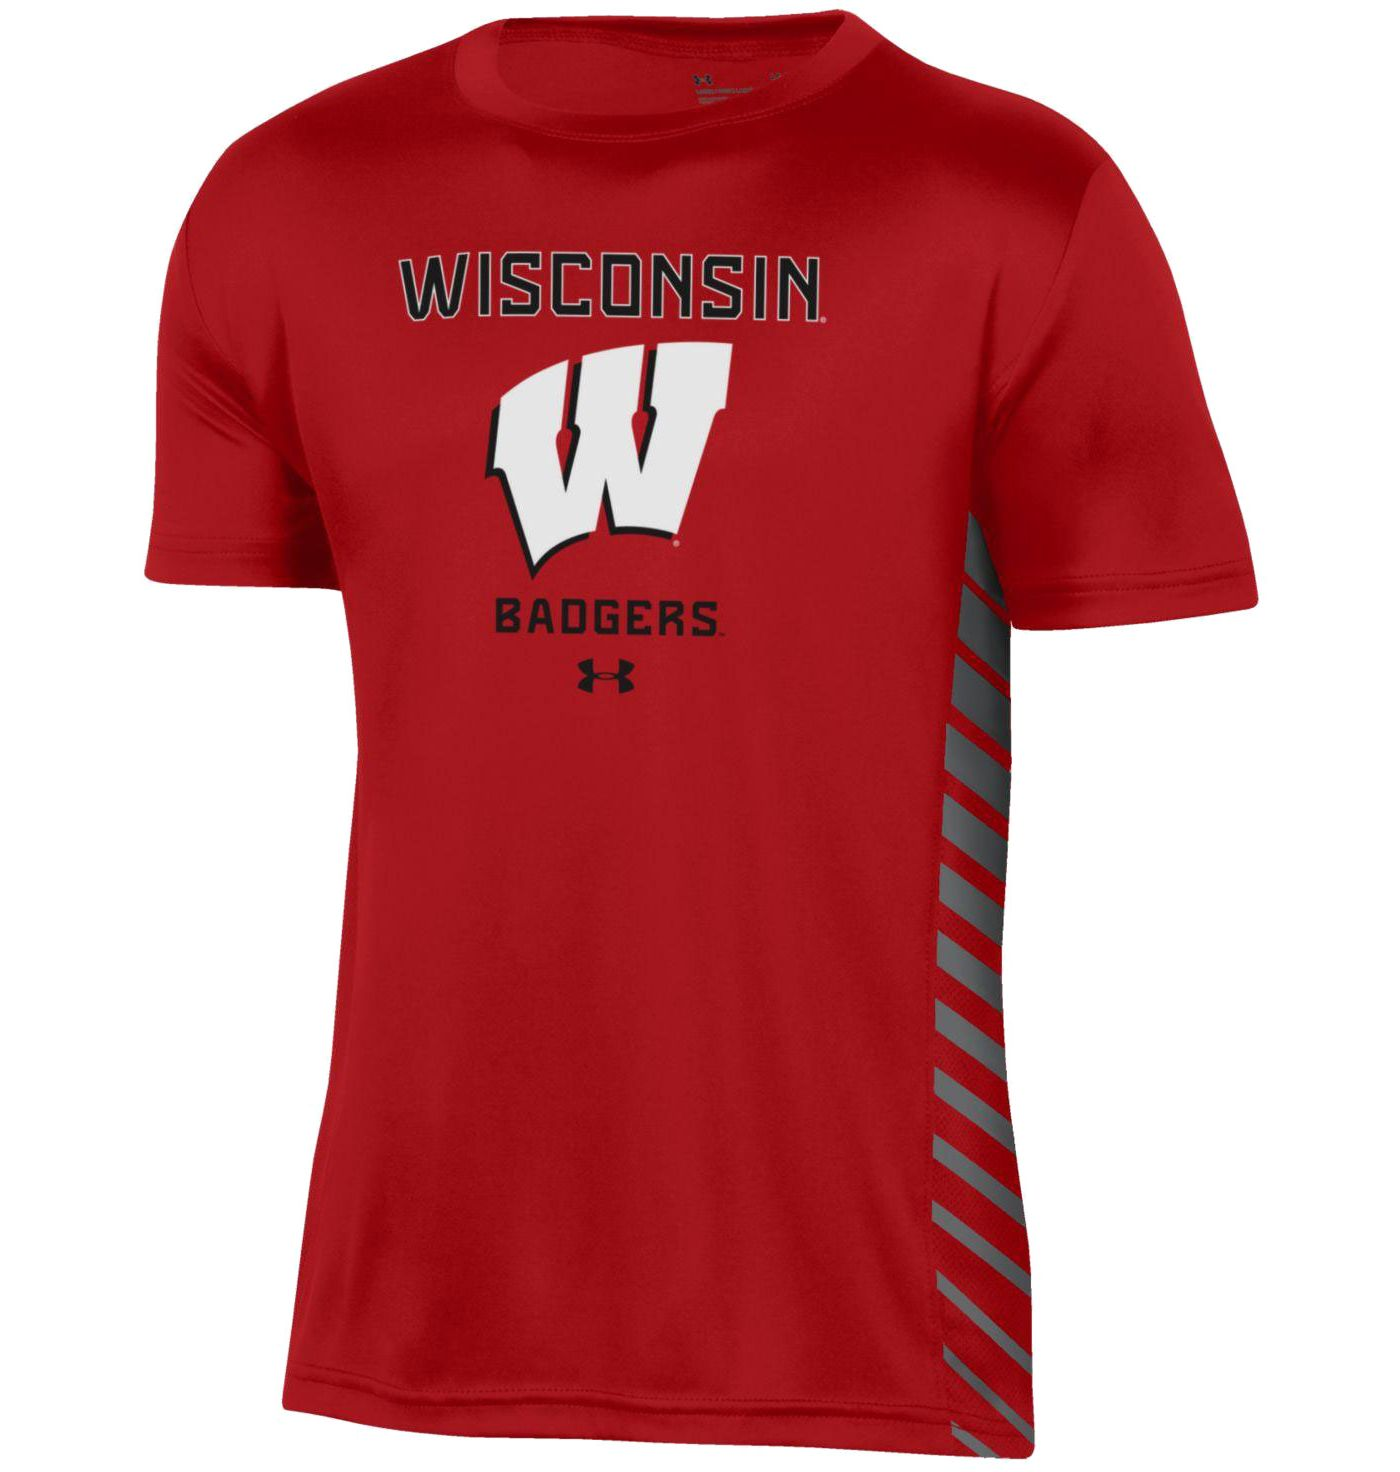 Under Armour Youth Wisconsin Badgers Red Performance Novelty T-Shirt